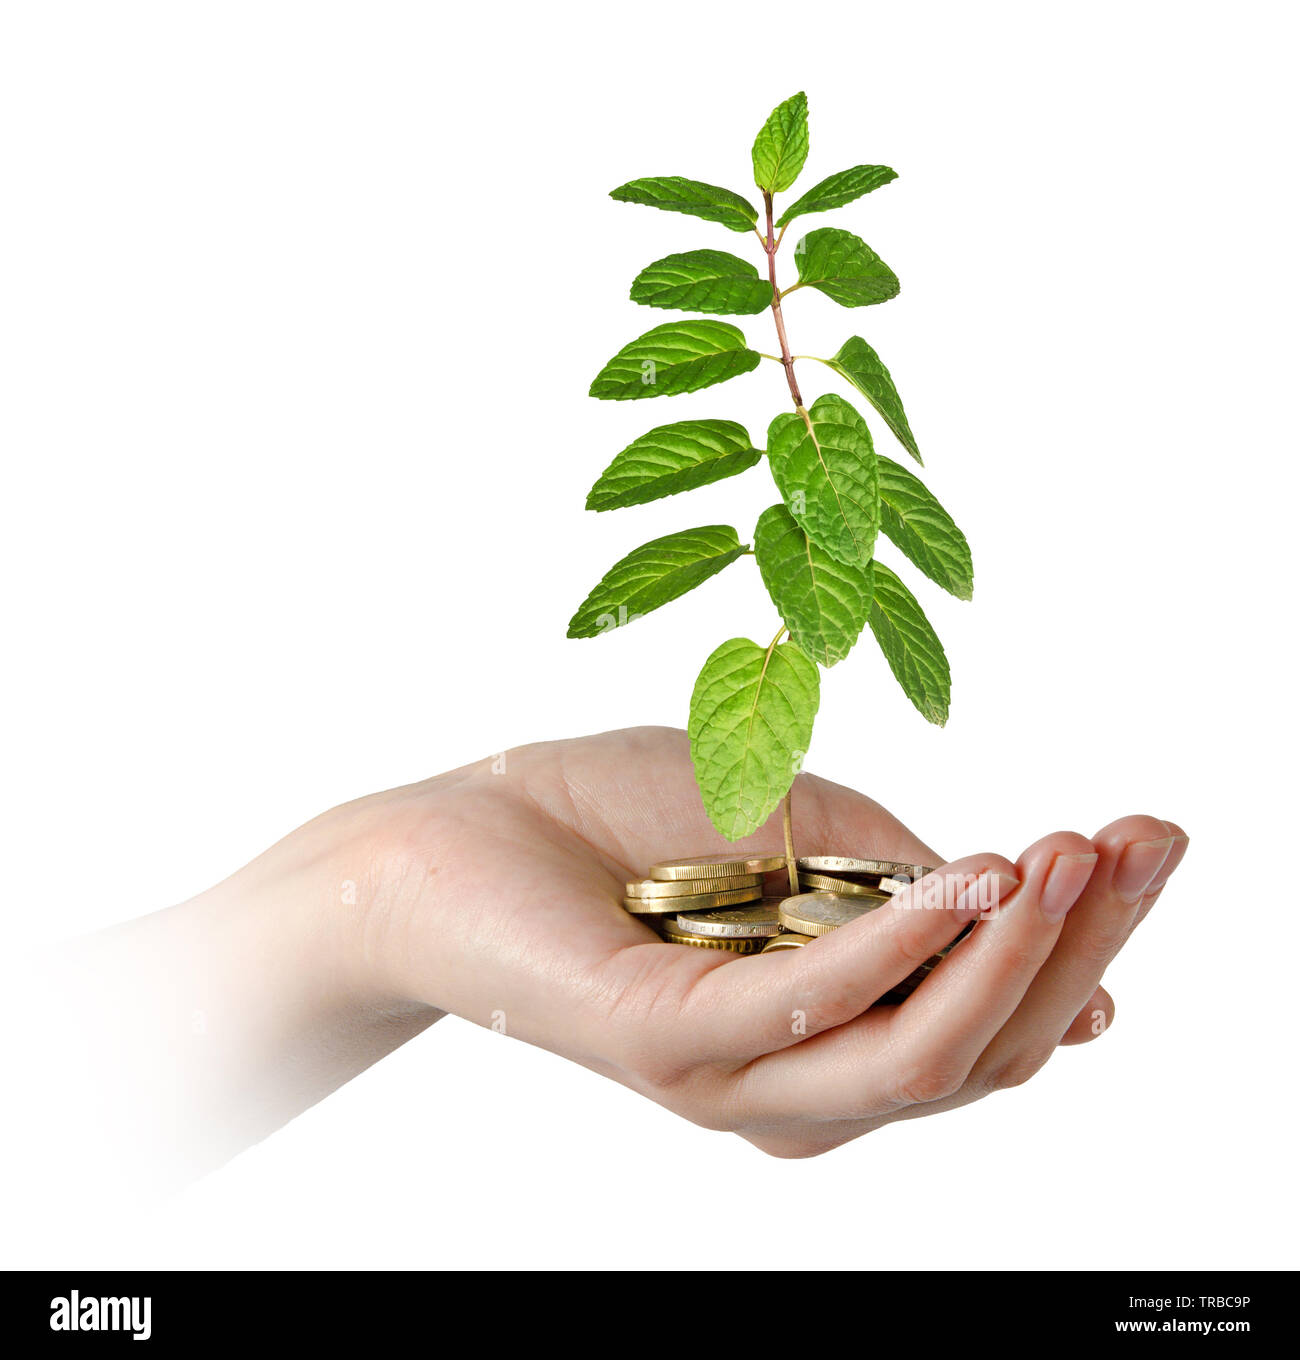 Mint in hand - Stock Image